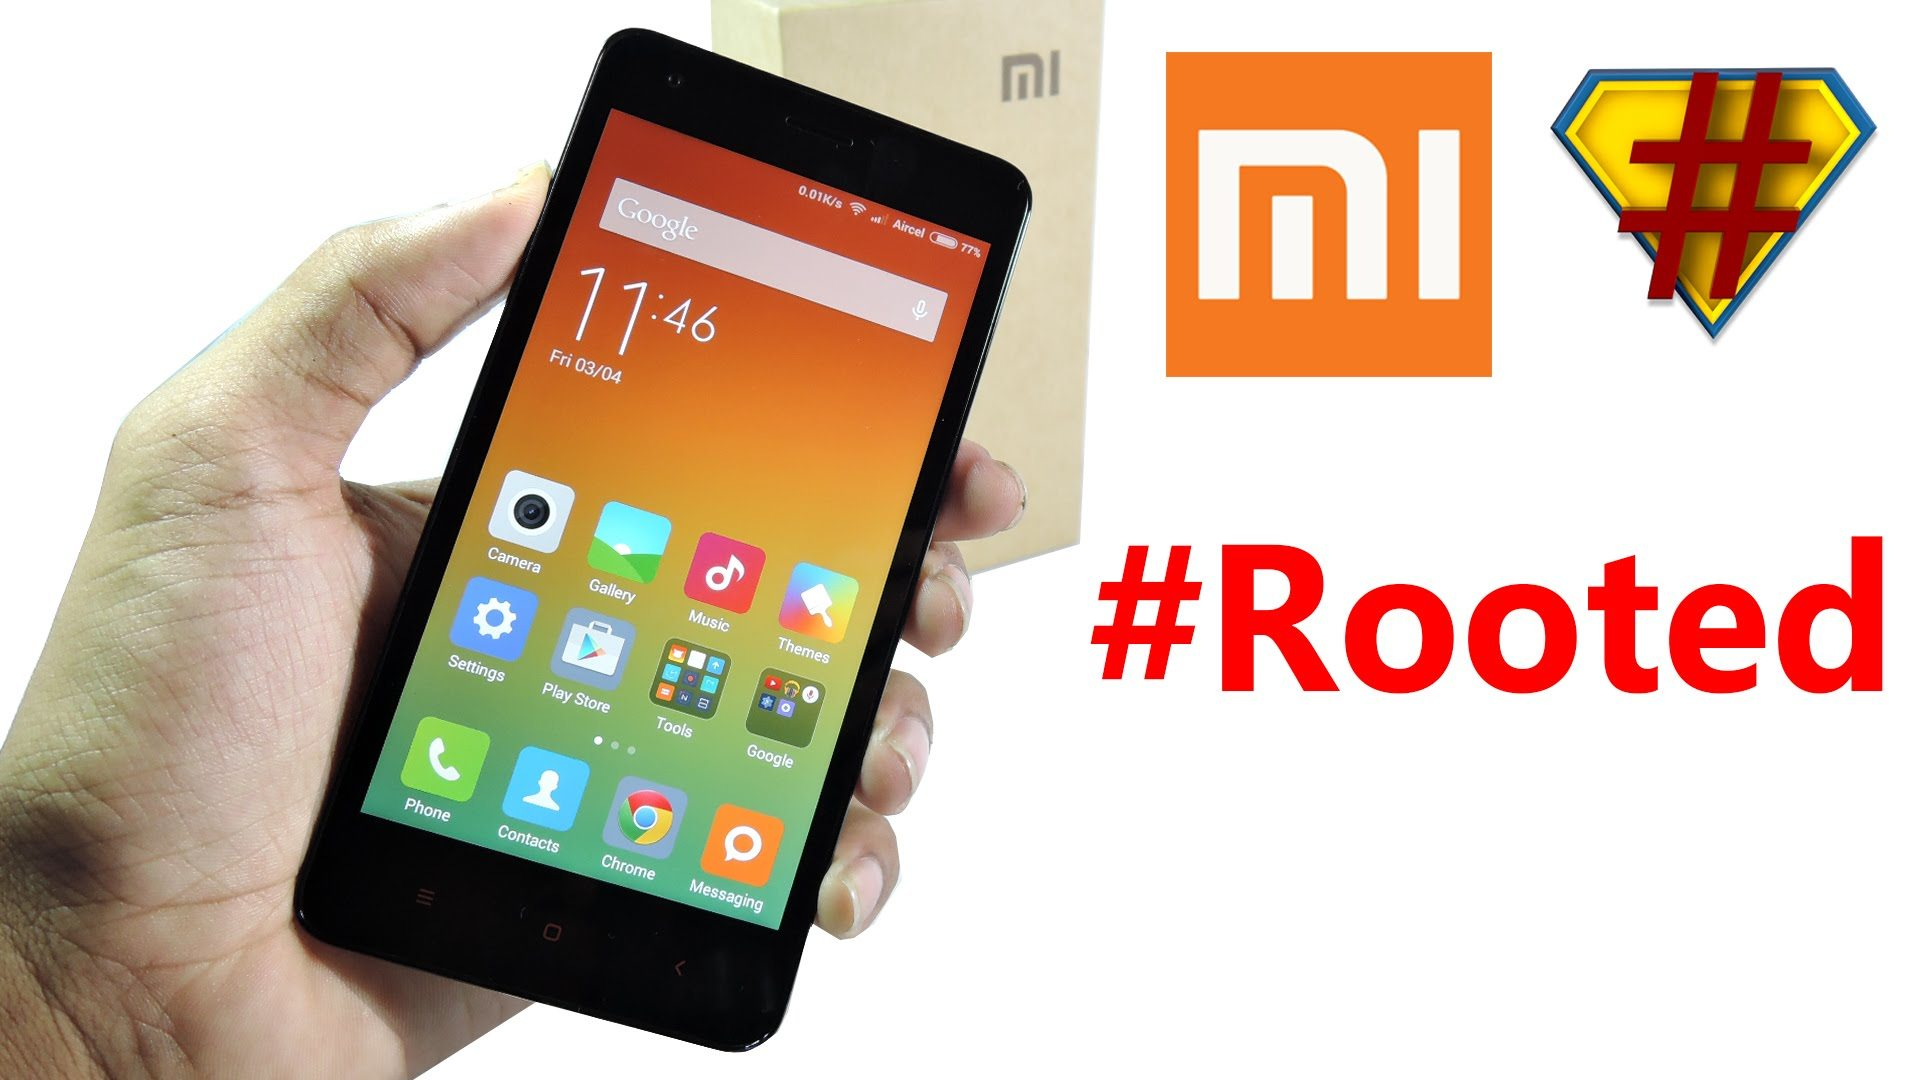 Rooted Xiaomi Device